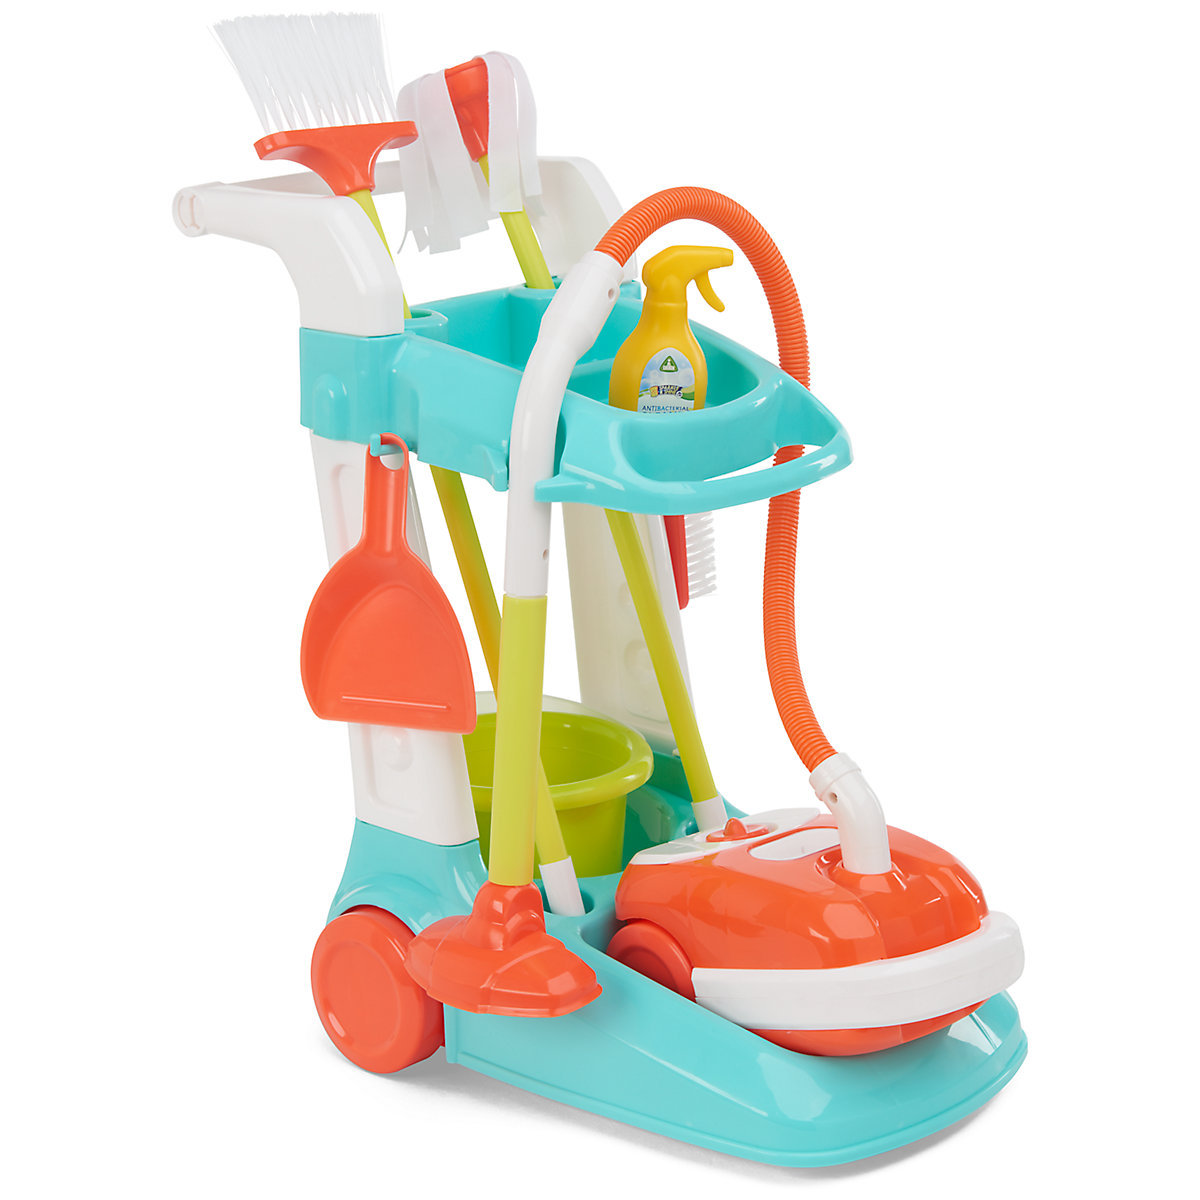 New ELC Boys and Girls Cleaning Trolley Toy From 3 years - Toy Gifts